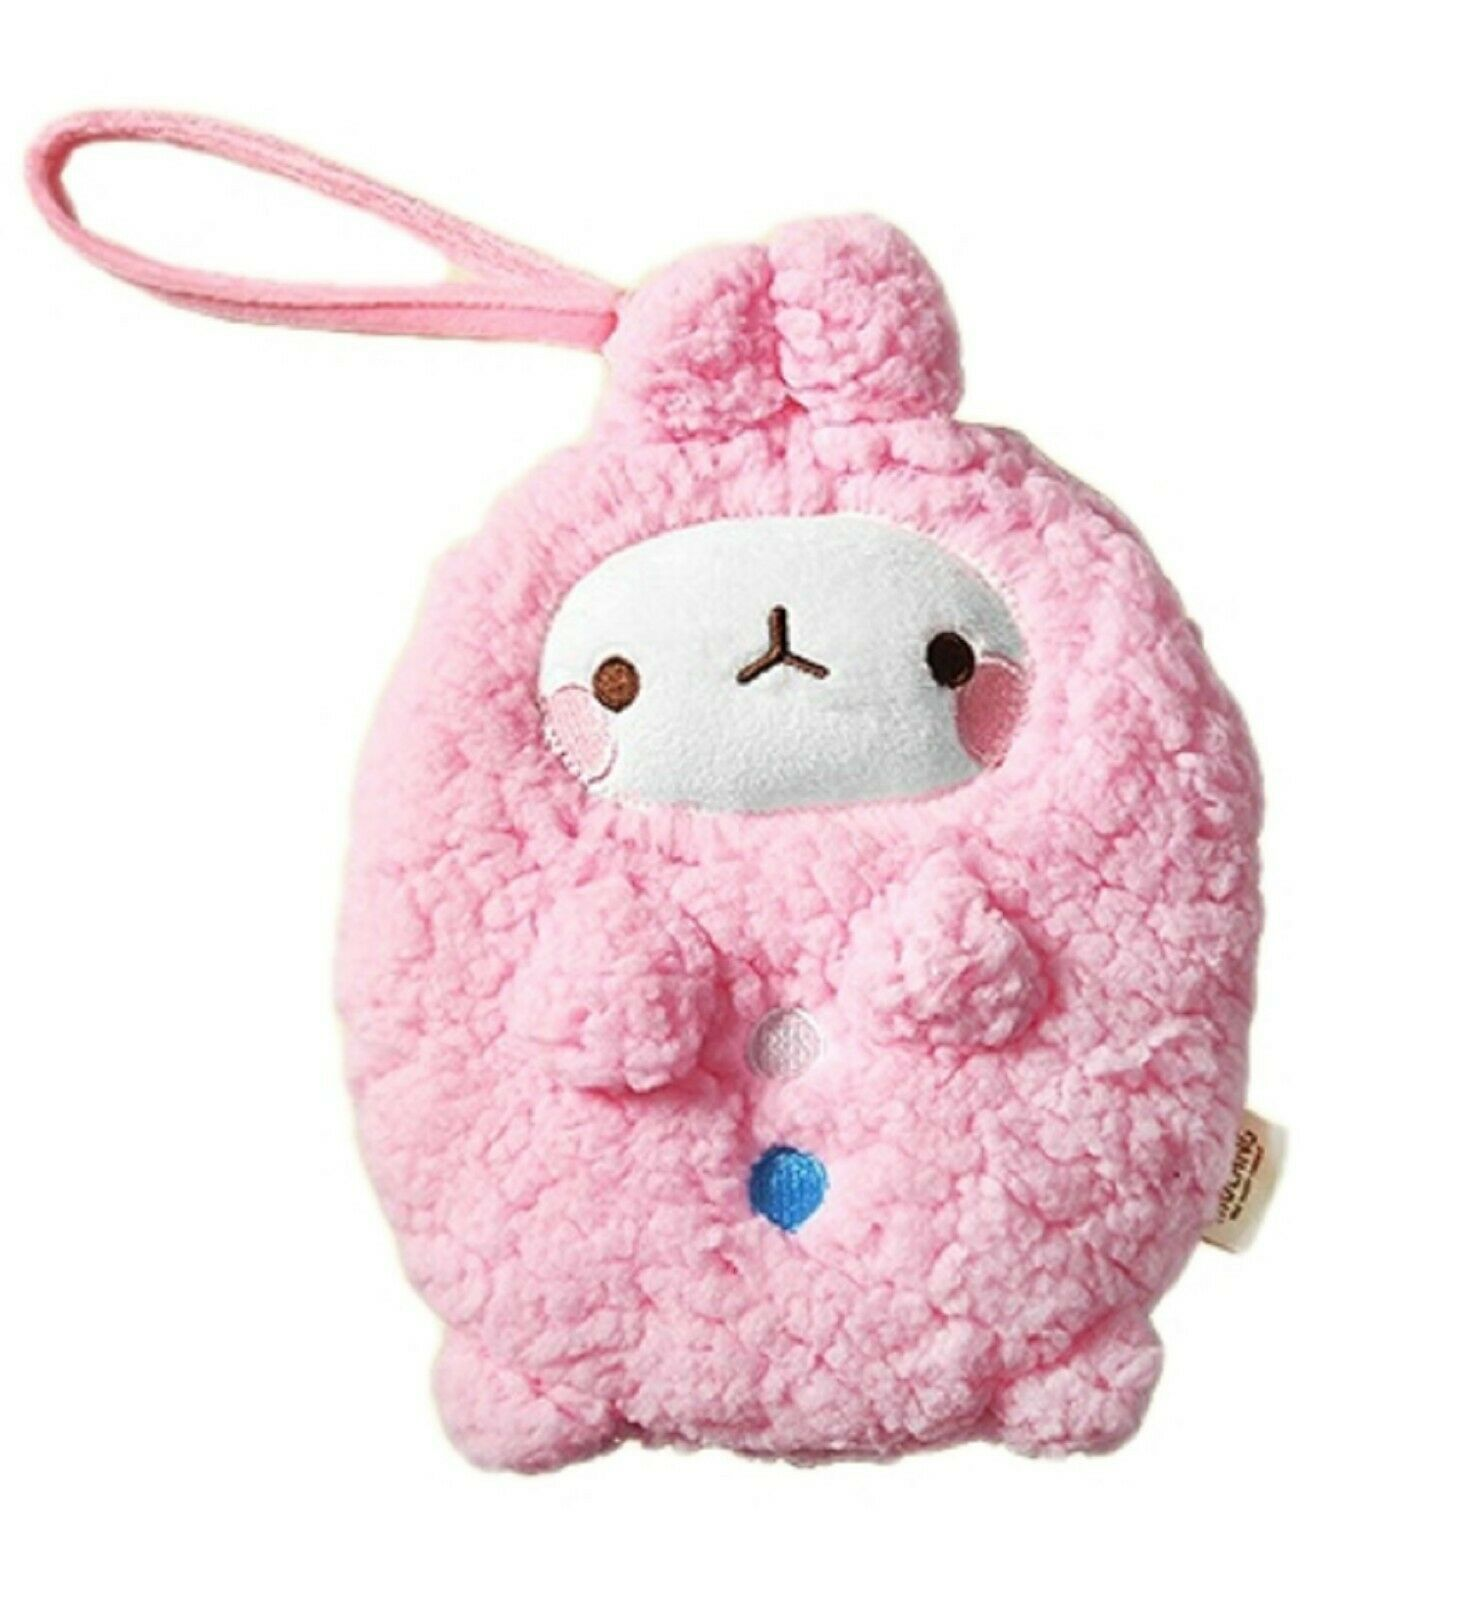 Molang Cosmetic Makeup Pen Strap Pouch Bag Case (Pink)